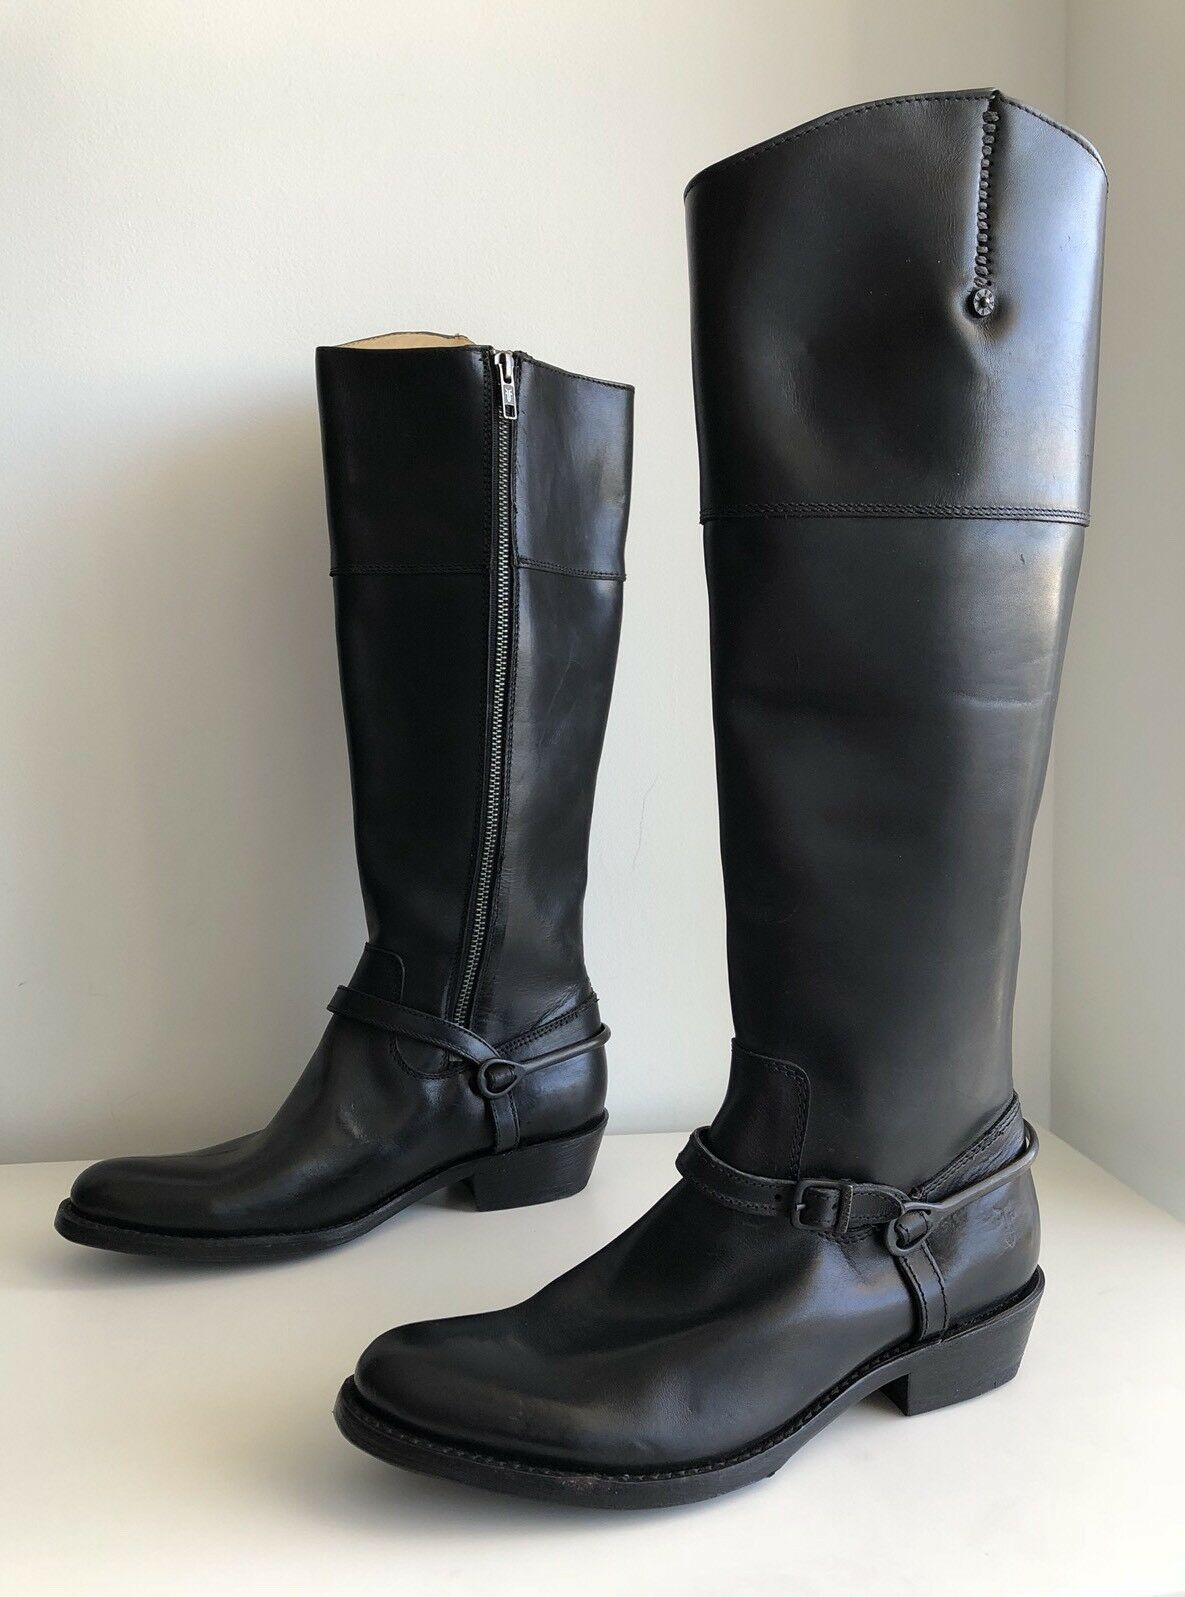 Frye Rider Spur Tall Leather Side Zip Knee High Boot, Black. Size 6